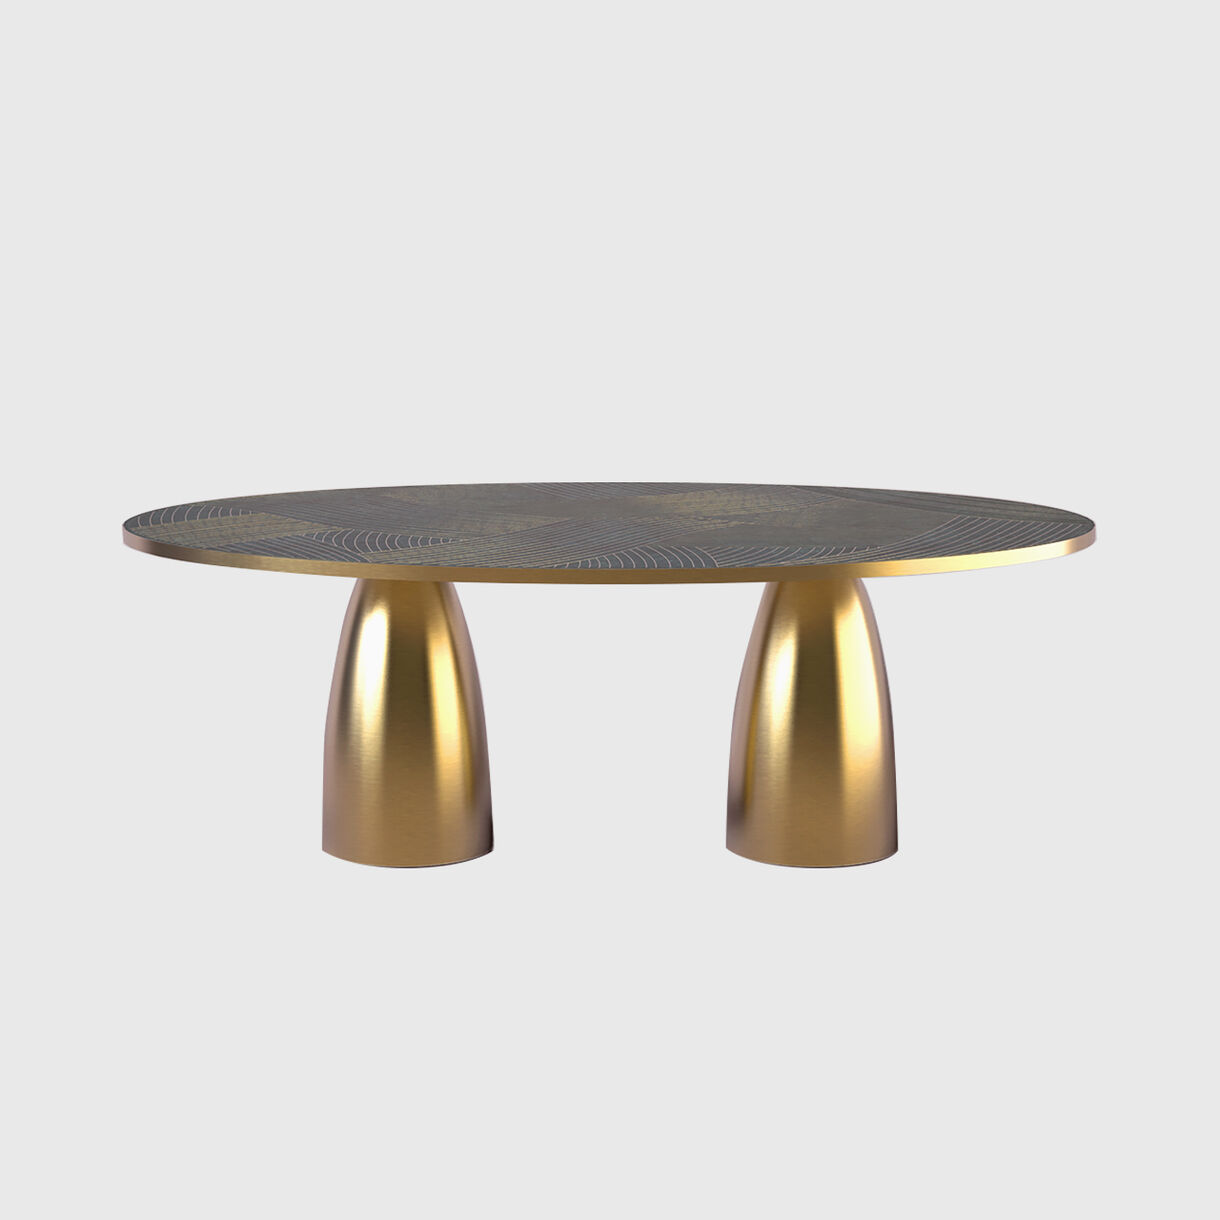 Lustre Oval Dining Table, Nero Marble with Dhow Inlay